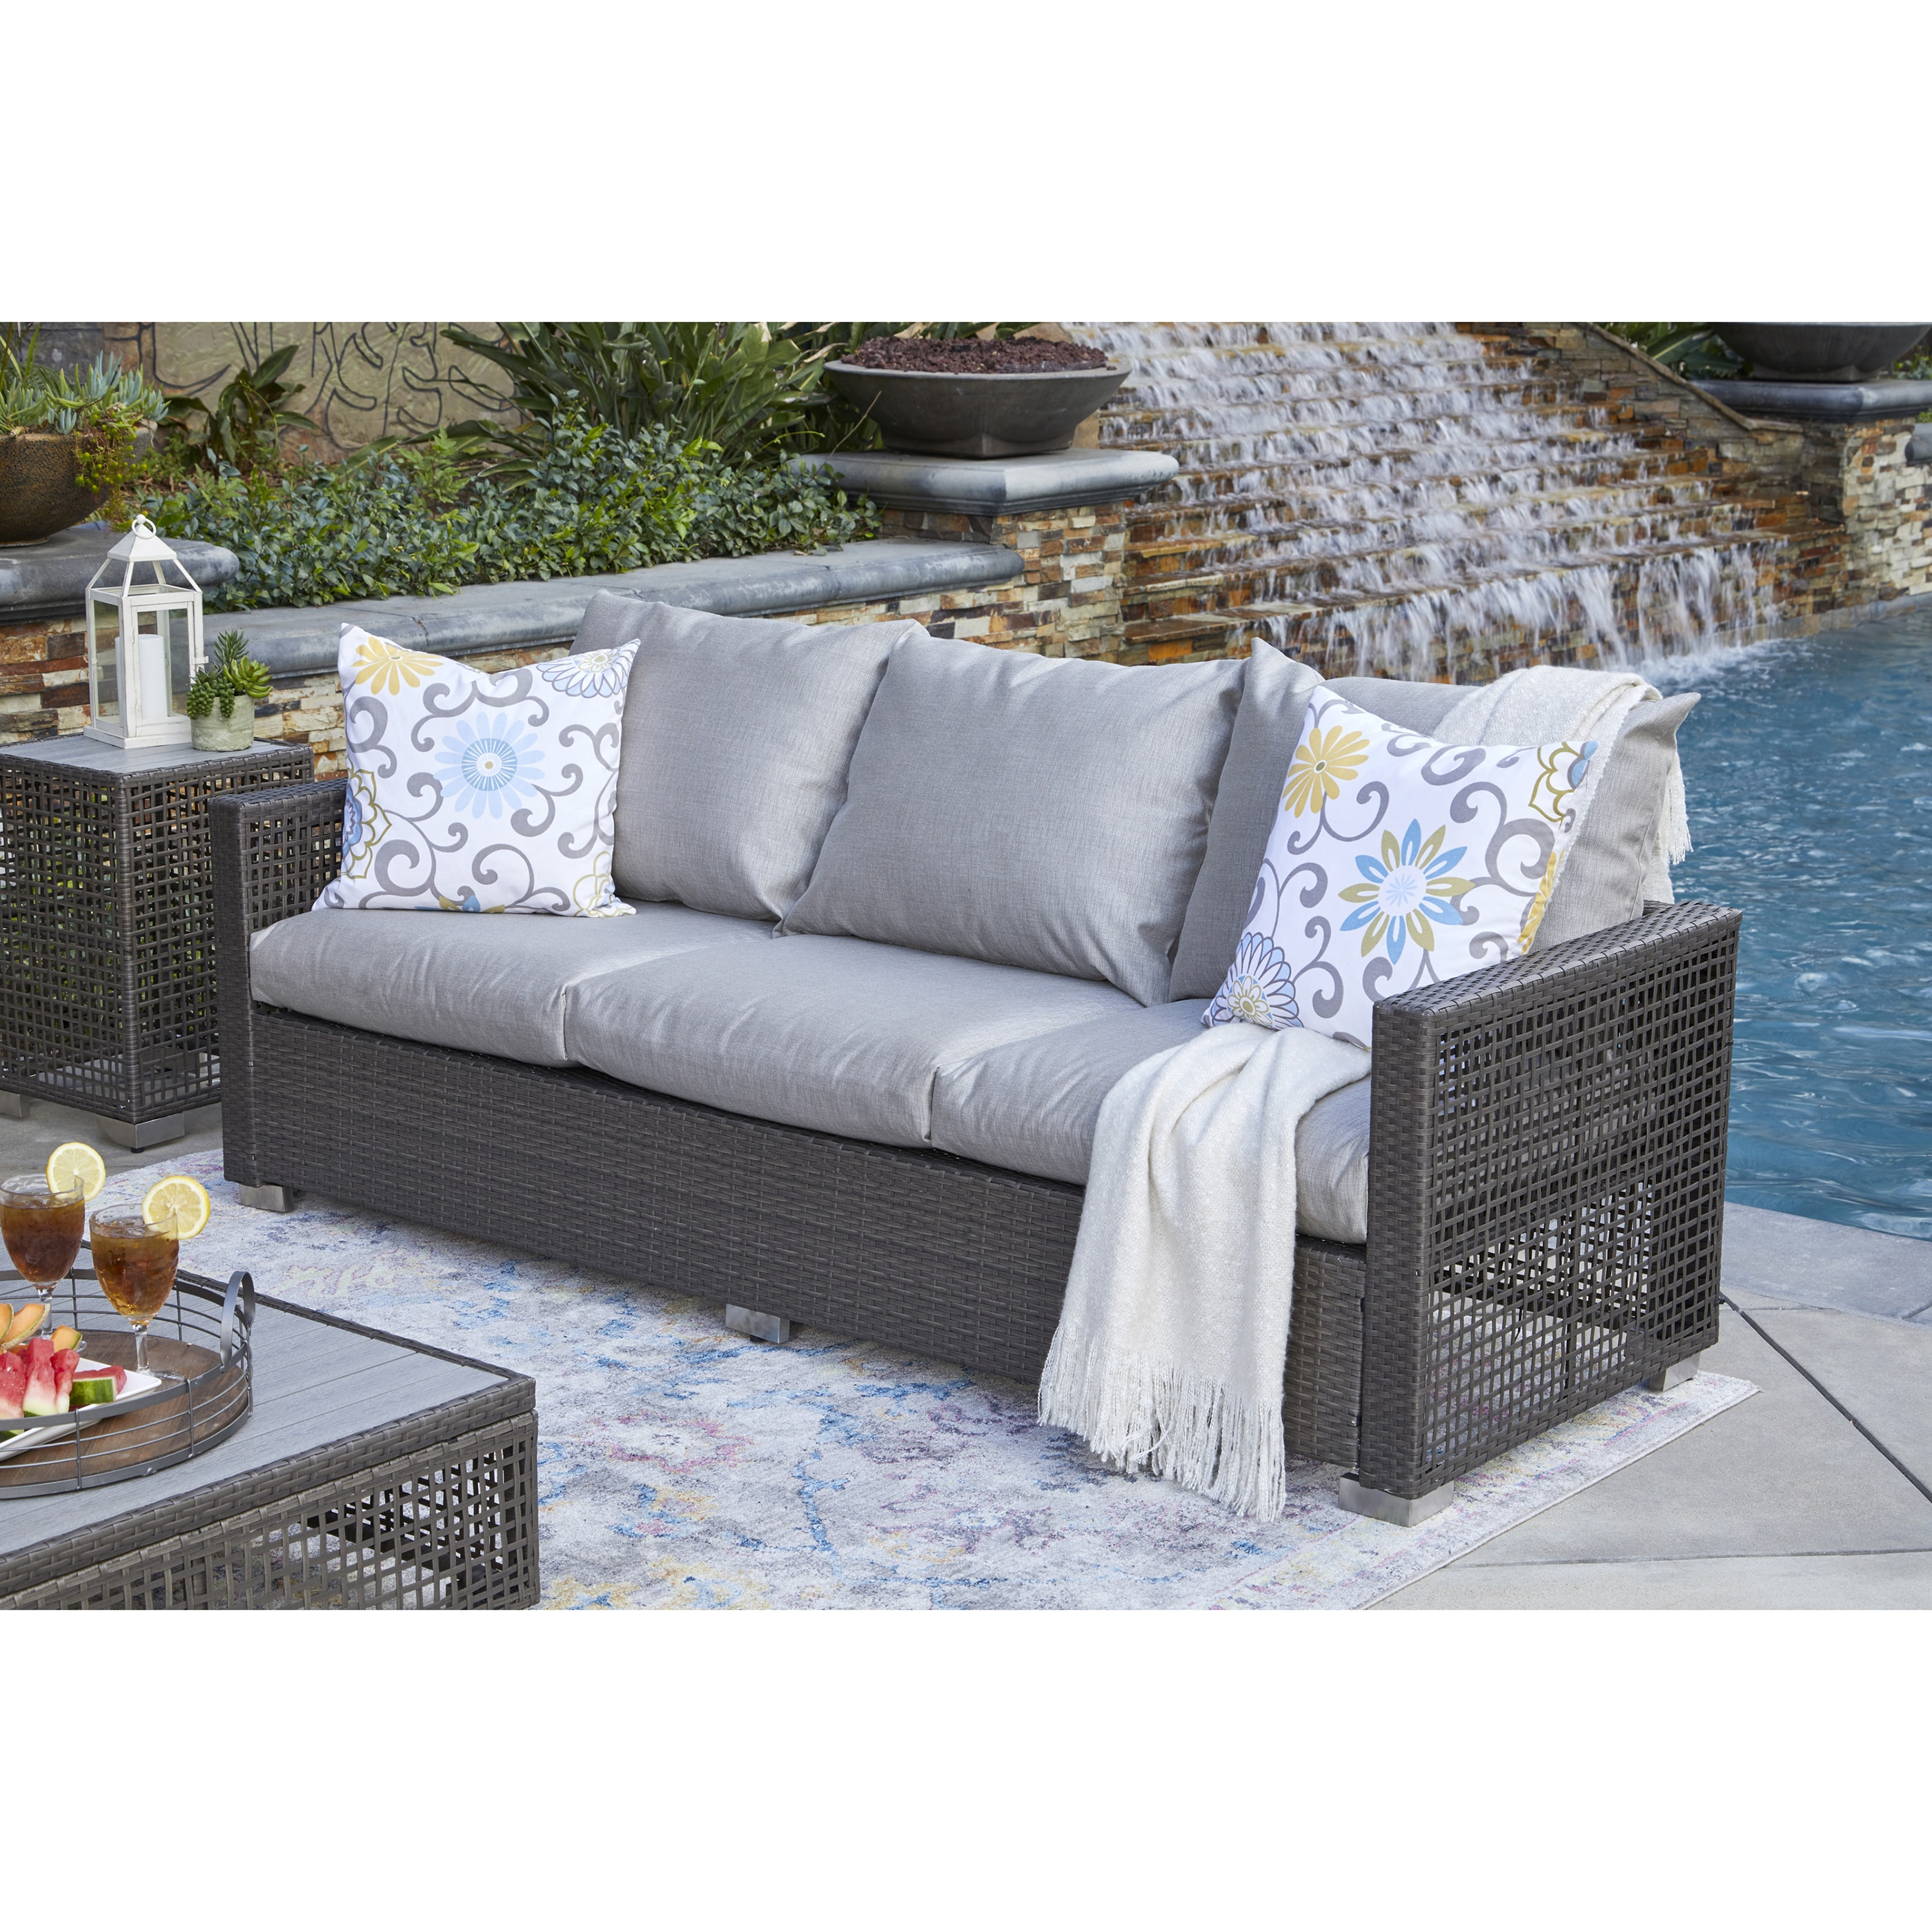 Florence 8 Piece Rattan Sofa Set With Cushions Rattan Sofa Grey Cushions Taraba Home Review